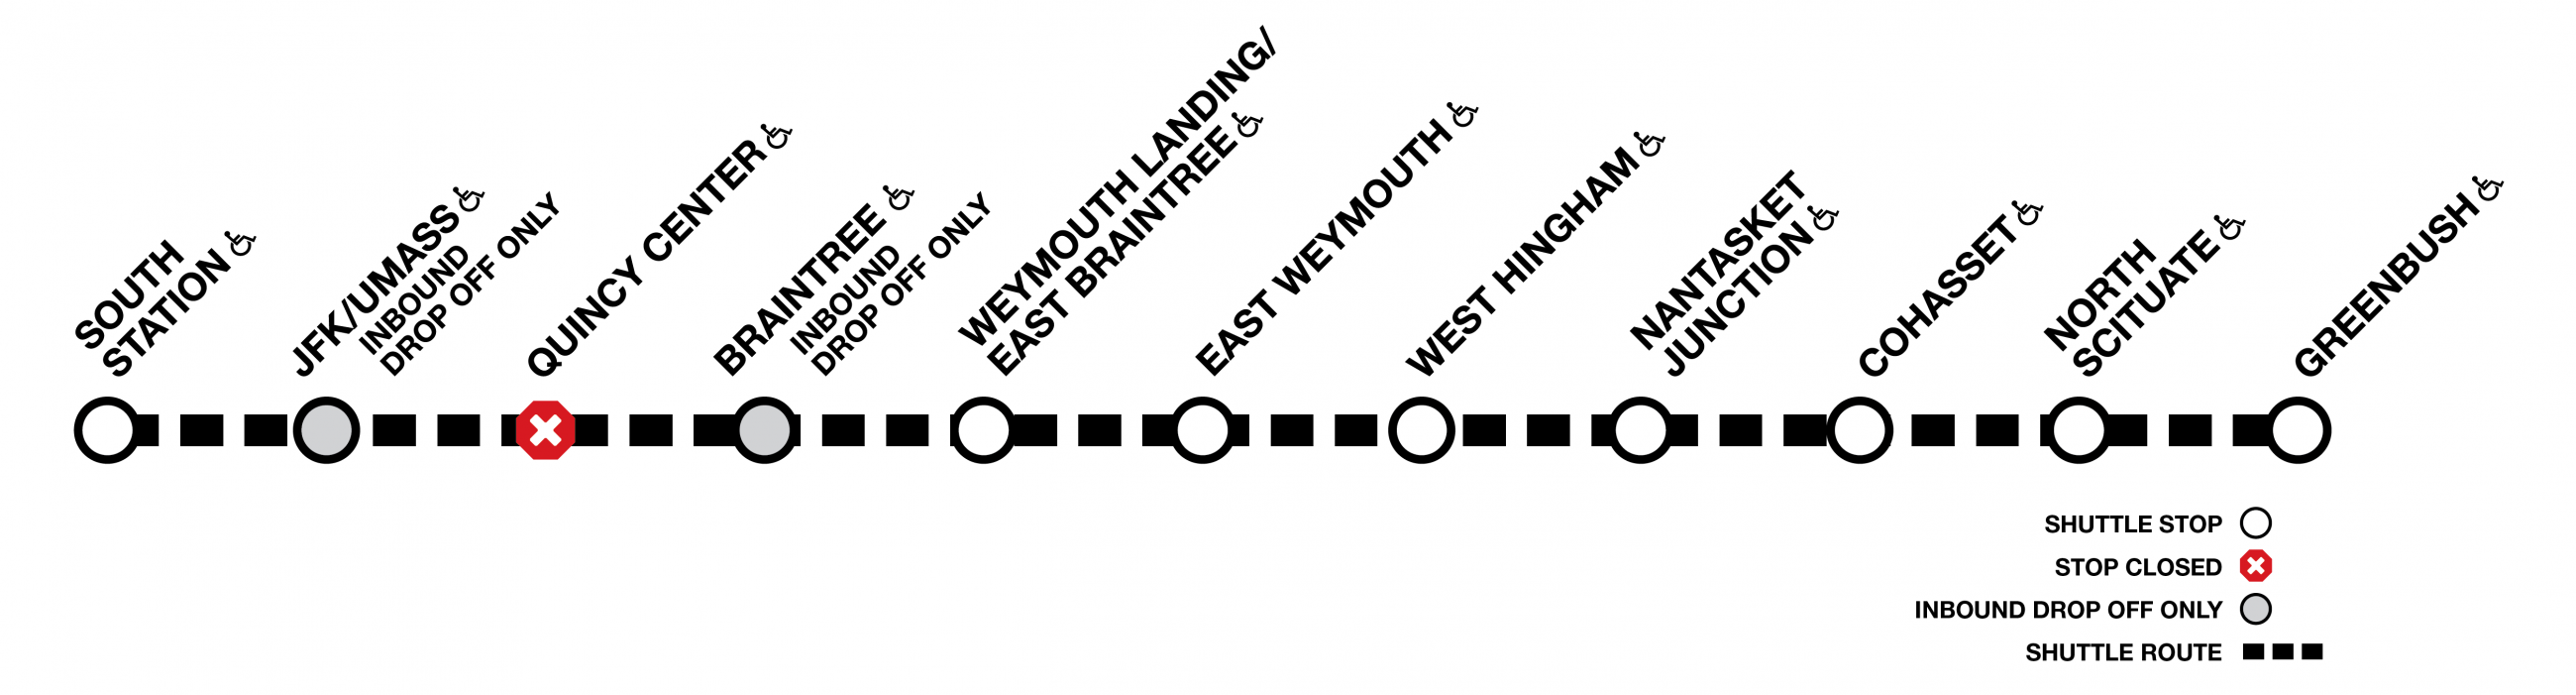 On the Greenbush line, shuttles run between South Station and Greenbush, with no service at Quincy Center. Braintree and JFK/UMass are drop-off only on inbound trips.